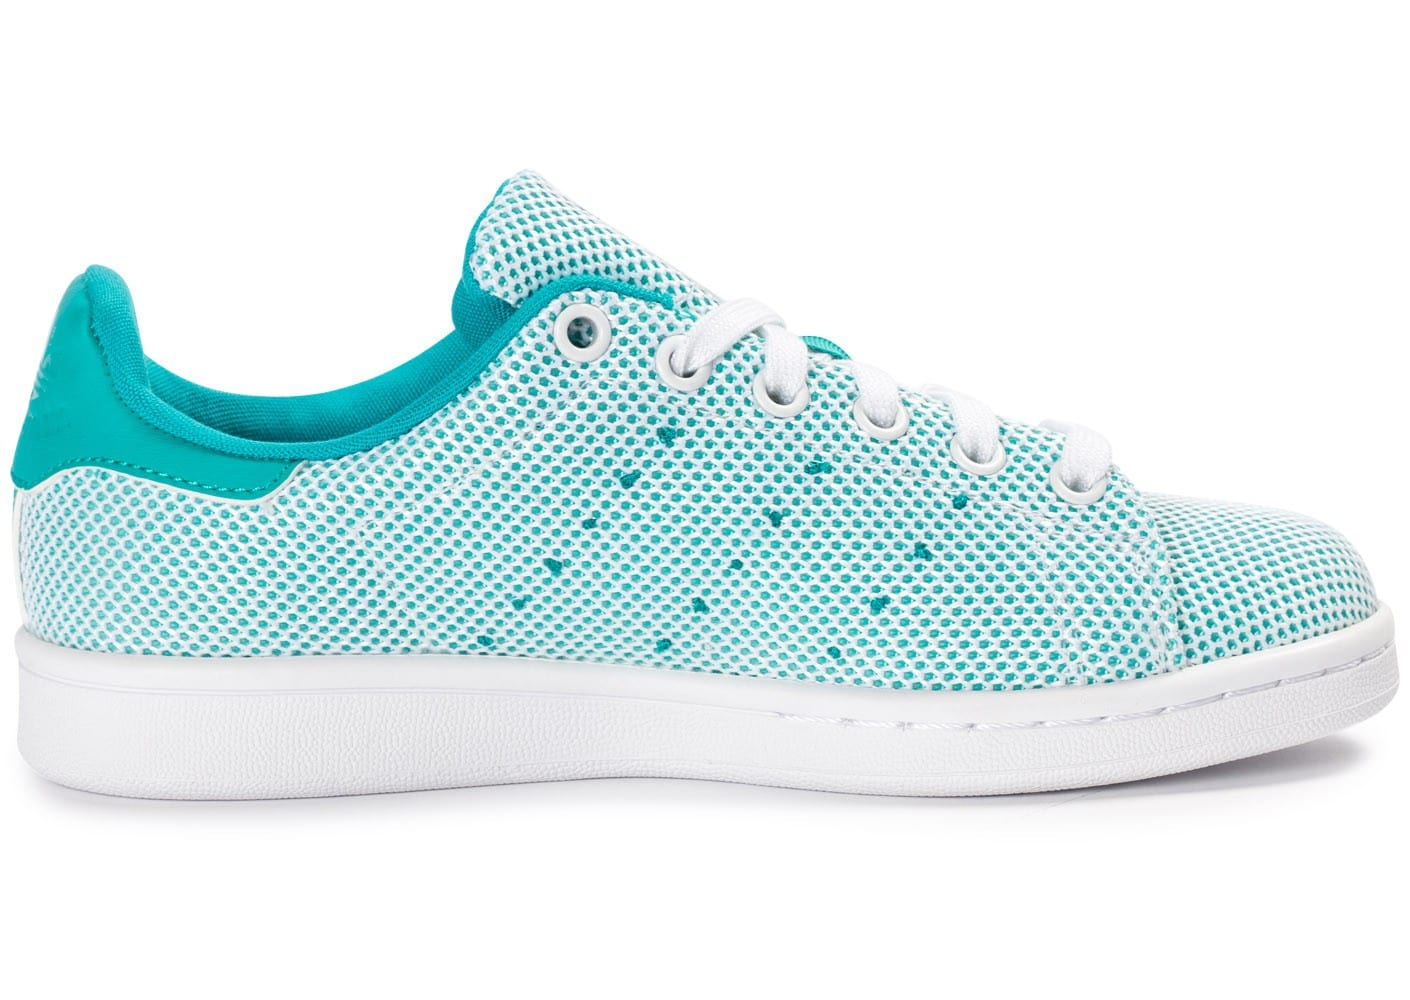 new arrival eb263 cd6c8 ... Chaussures adidas Stan Smith Adicolor Summer turquoise vue dessous ...